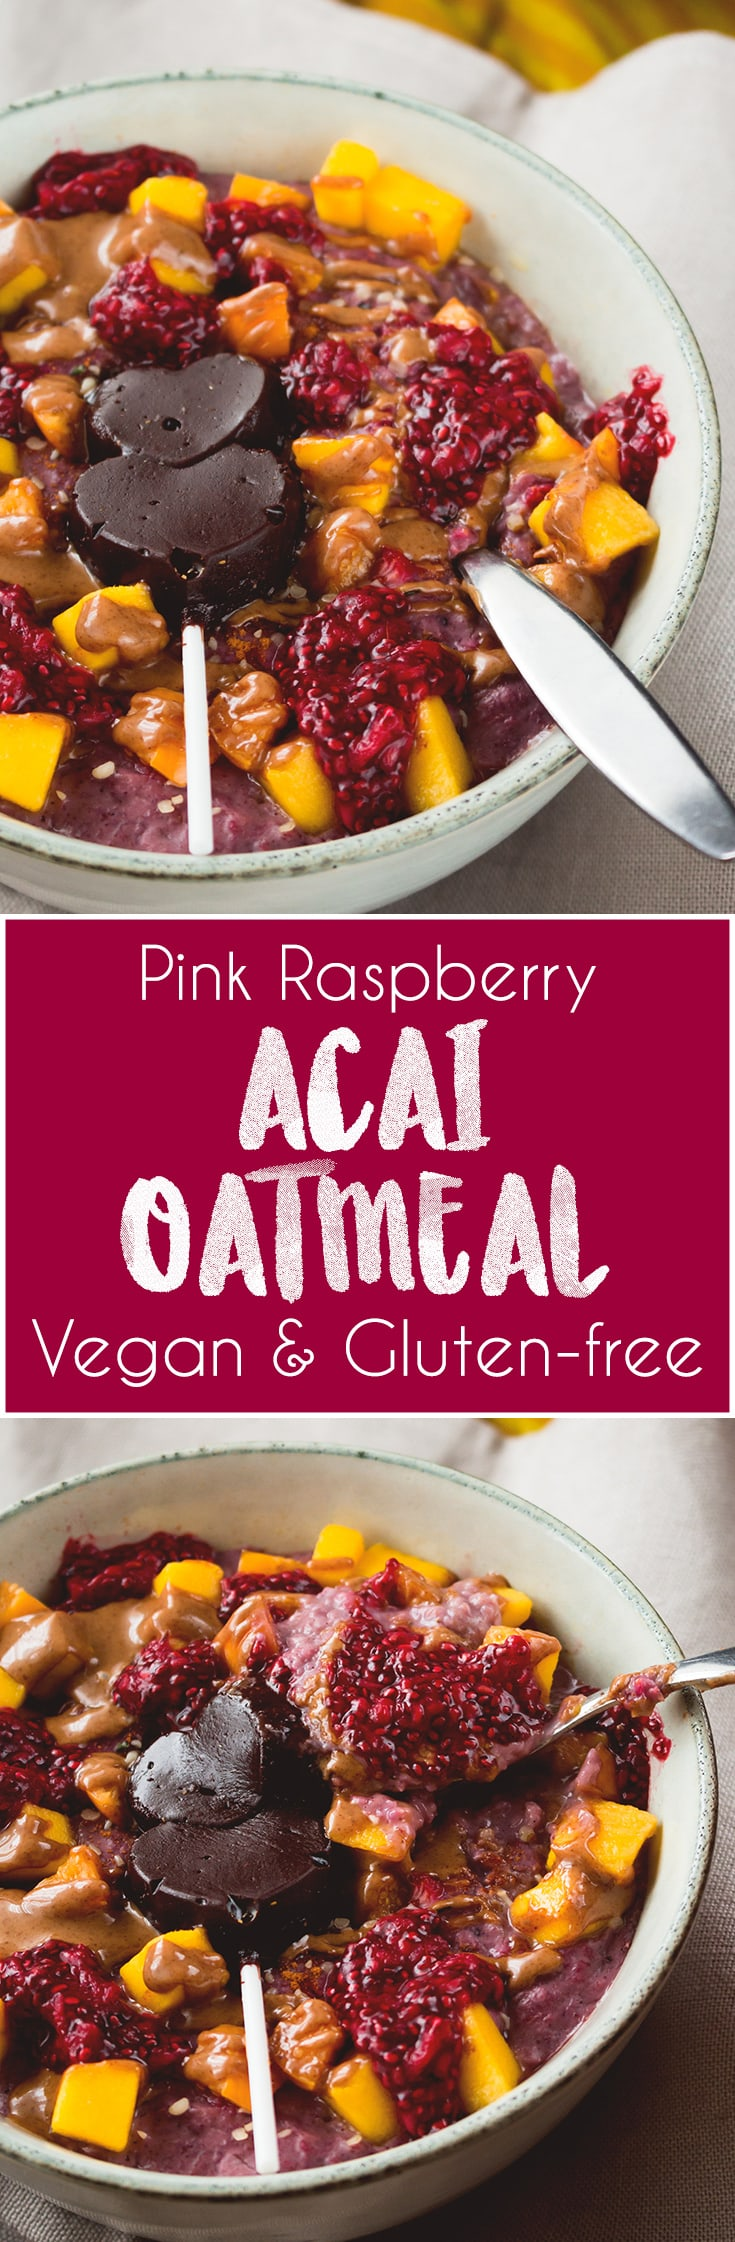 Pink Raspberry Acai Oatmeal is my new favorite breakfast! What day of the week would you say no to a bowl of delicious pink oatmeal? It's hearty, creamy, satisfying, and amazing for brightening a cold gloomy morning! | thehealthfulideas.com